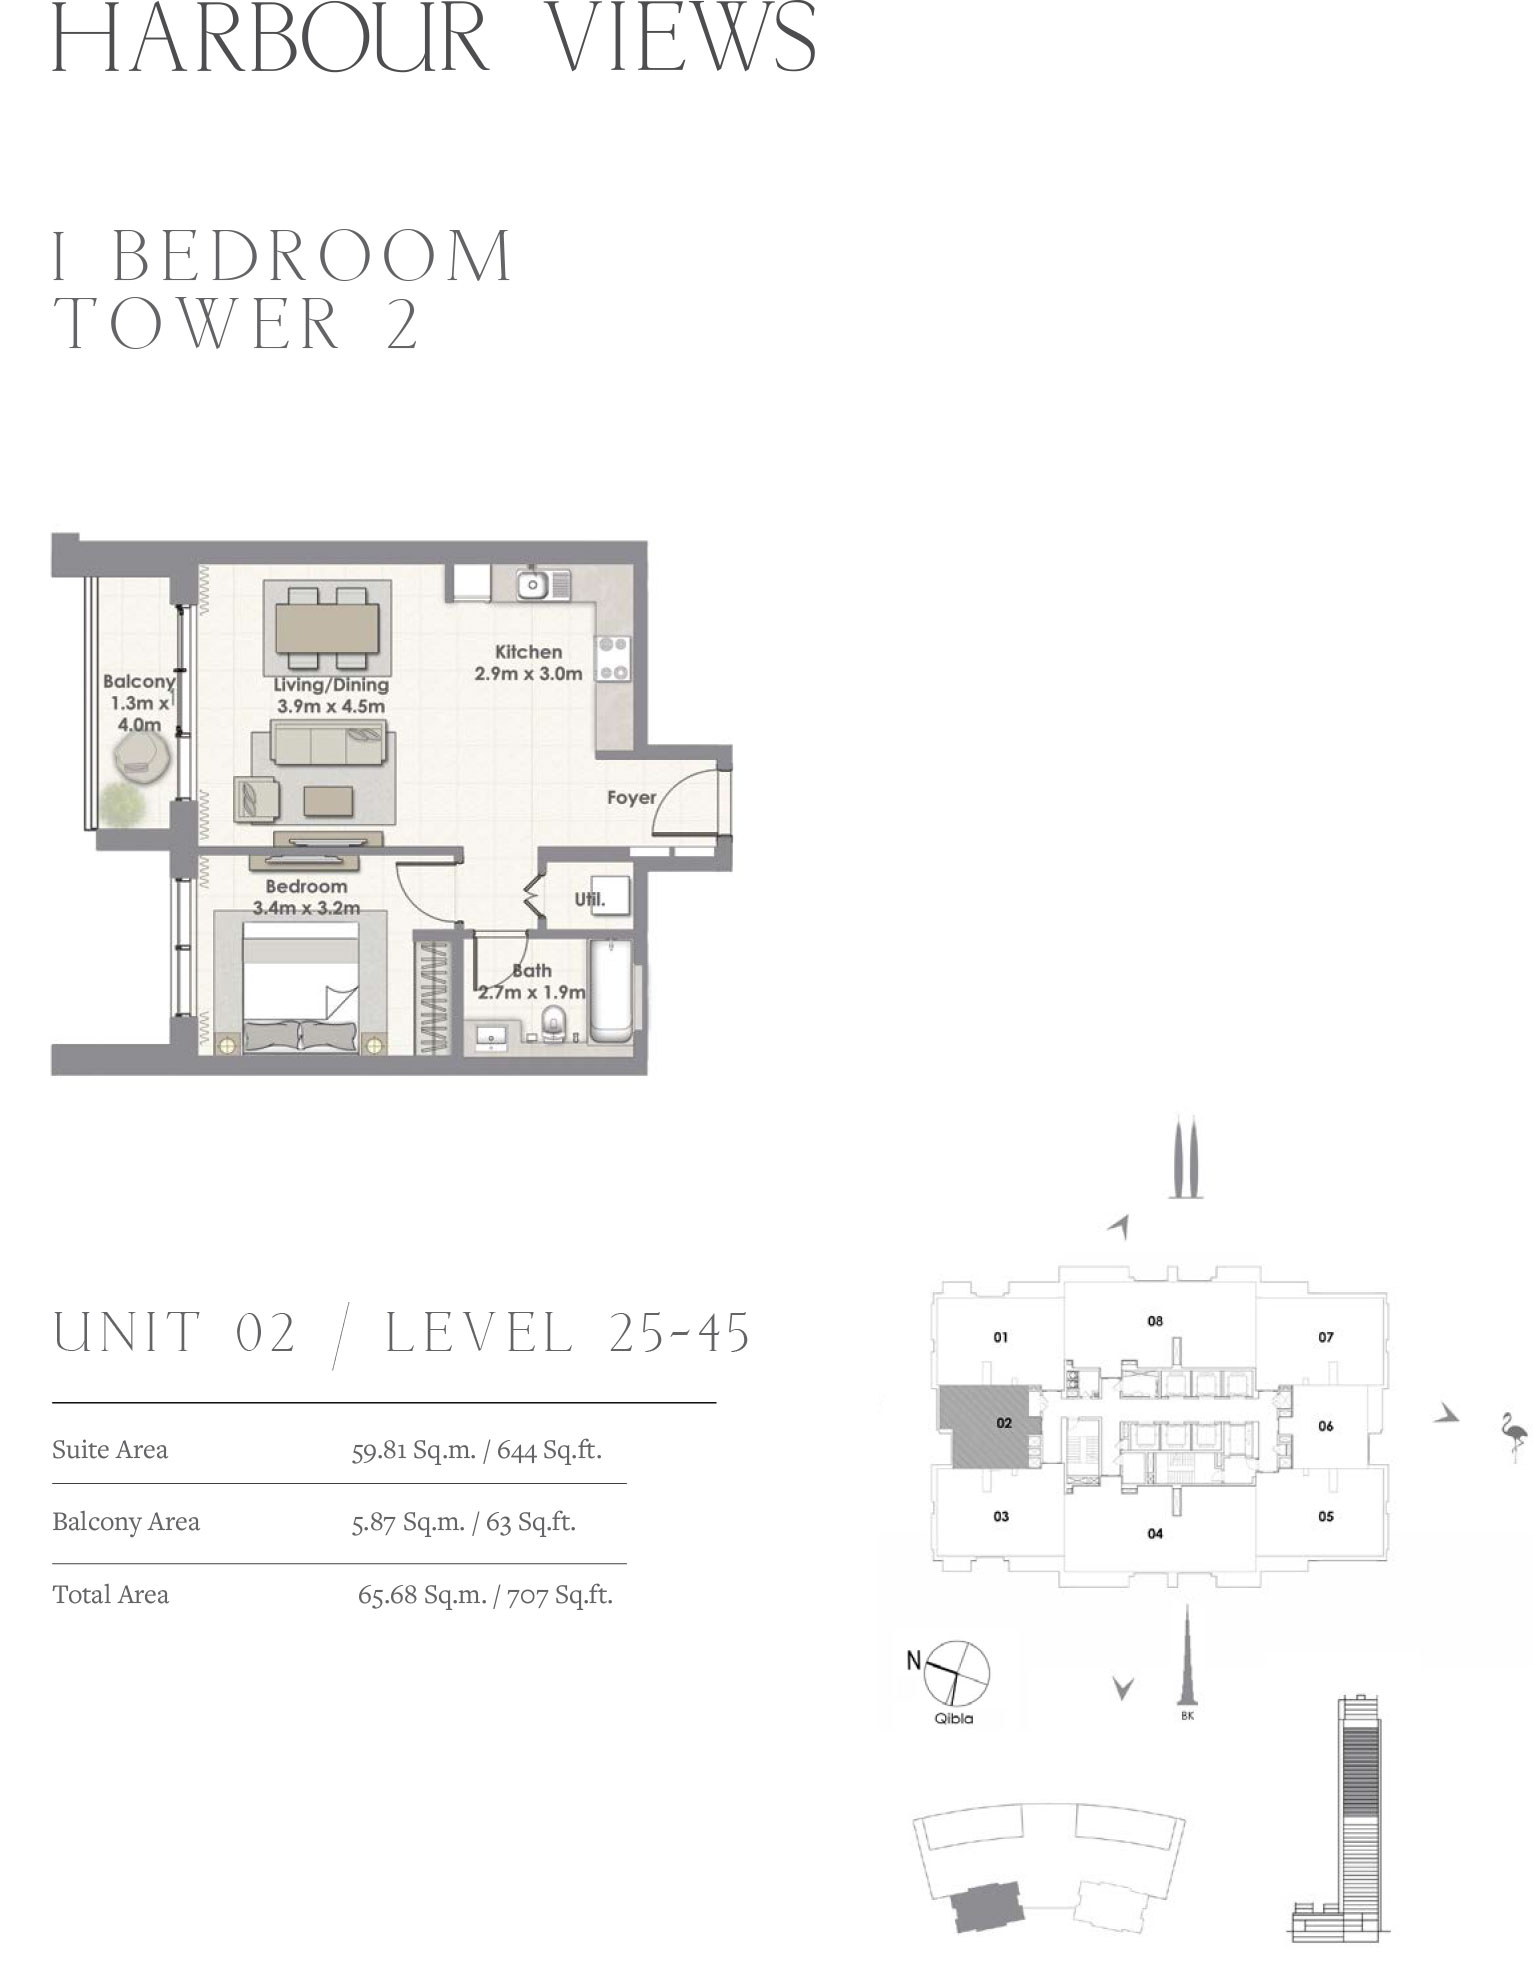 1 Bedroom Tower 2, Unit 02/Level 25-45